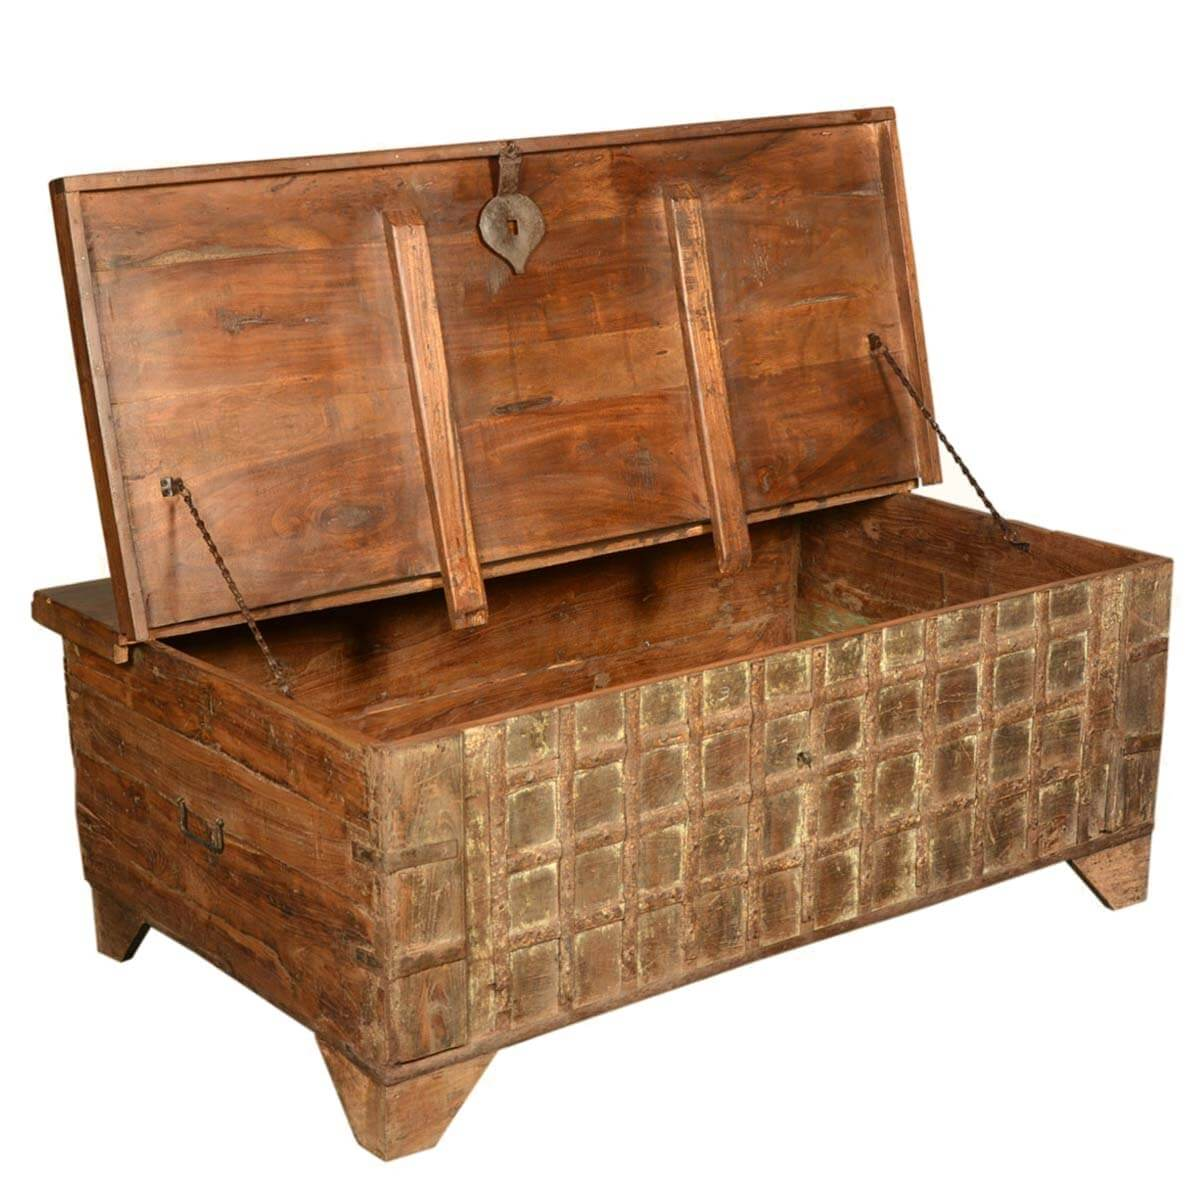 Gothic treasure reclaimed wood coffee table storage box chest for Reclaimed wood coffee table with storage